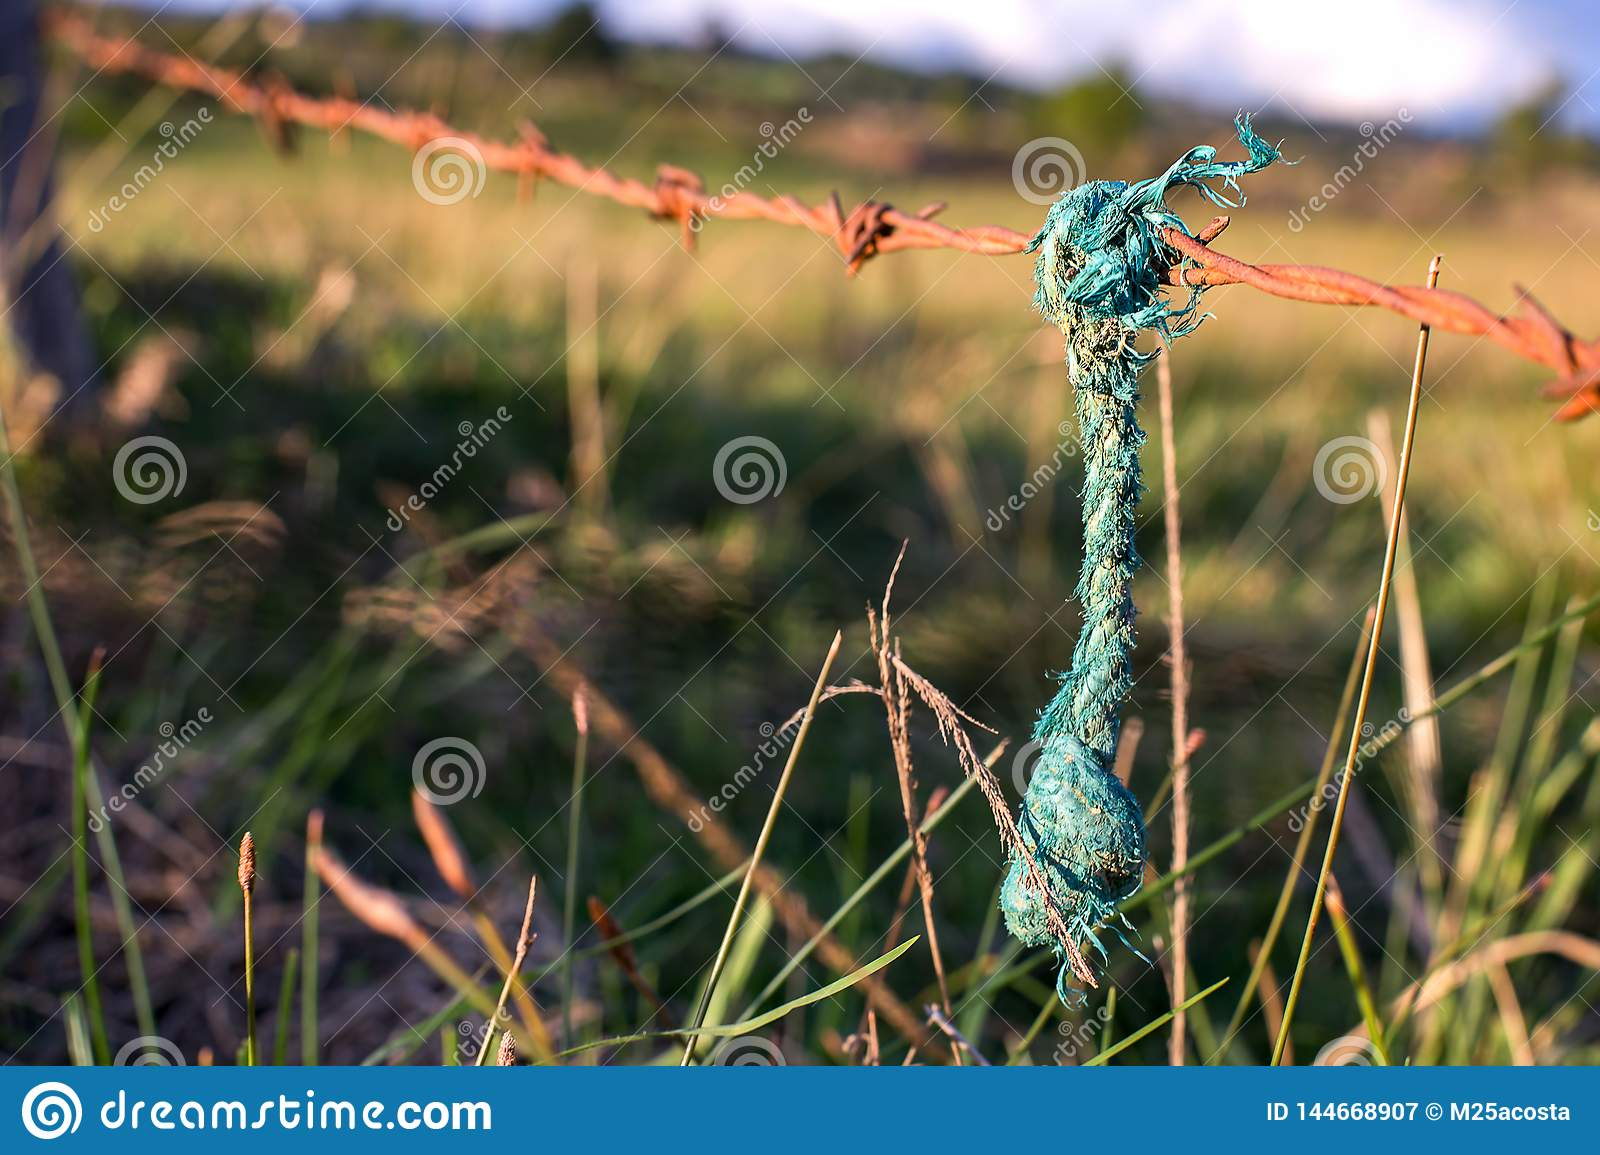 Green rope hanging from a rusted barb wired